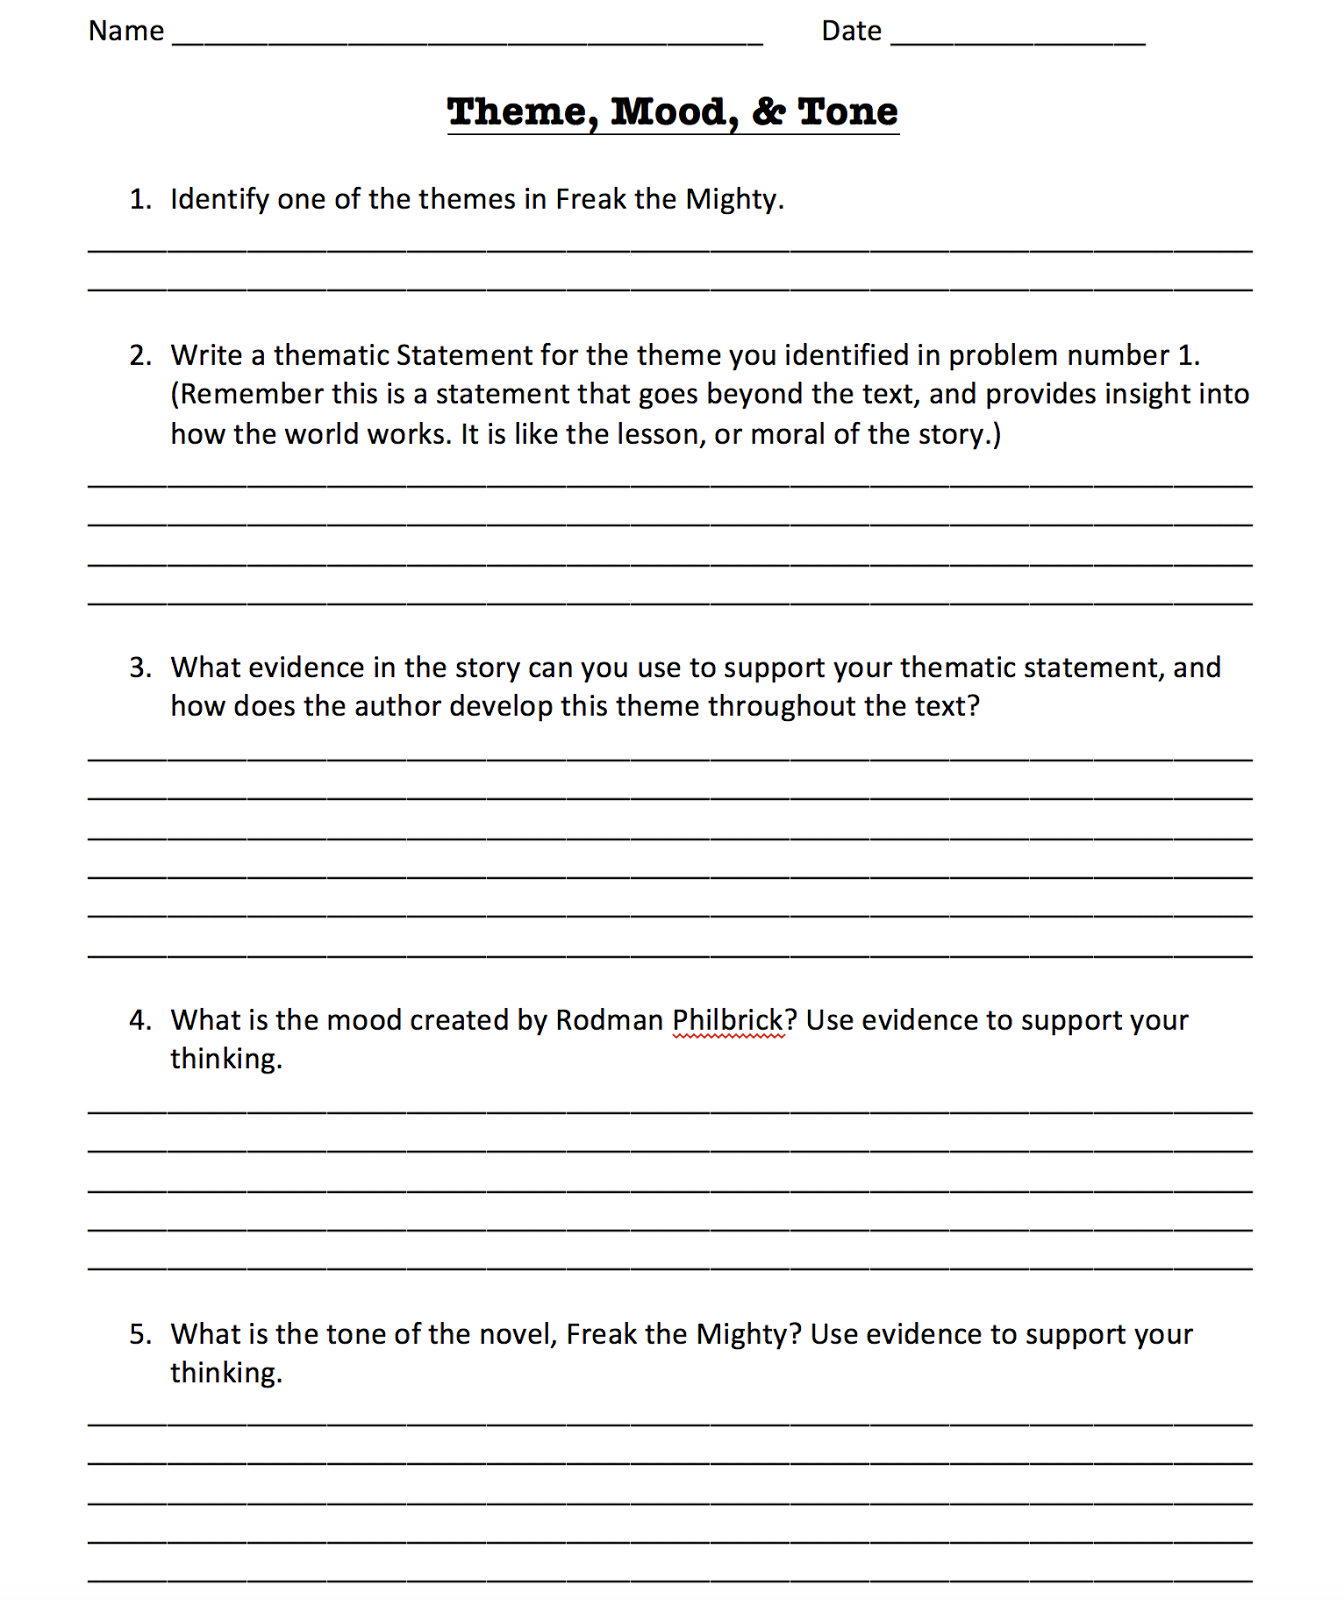 Mood Tone Style Passage Worksheet